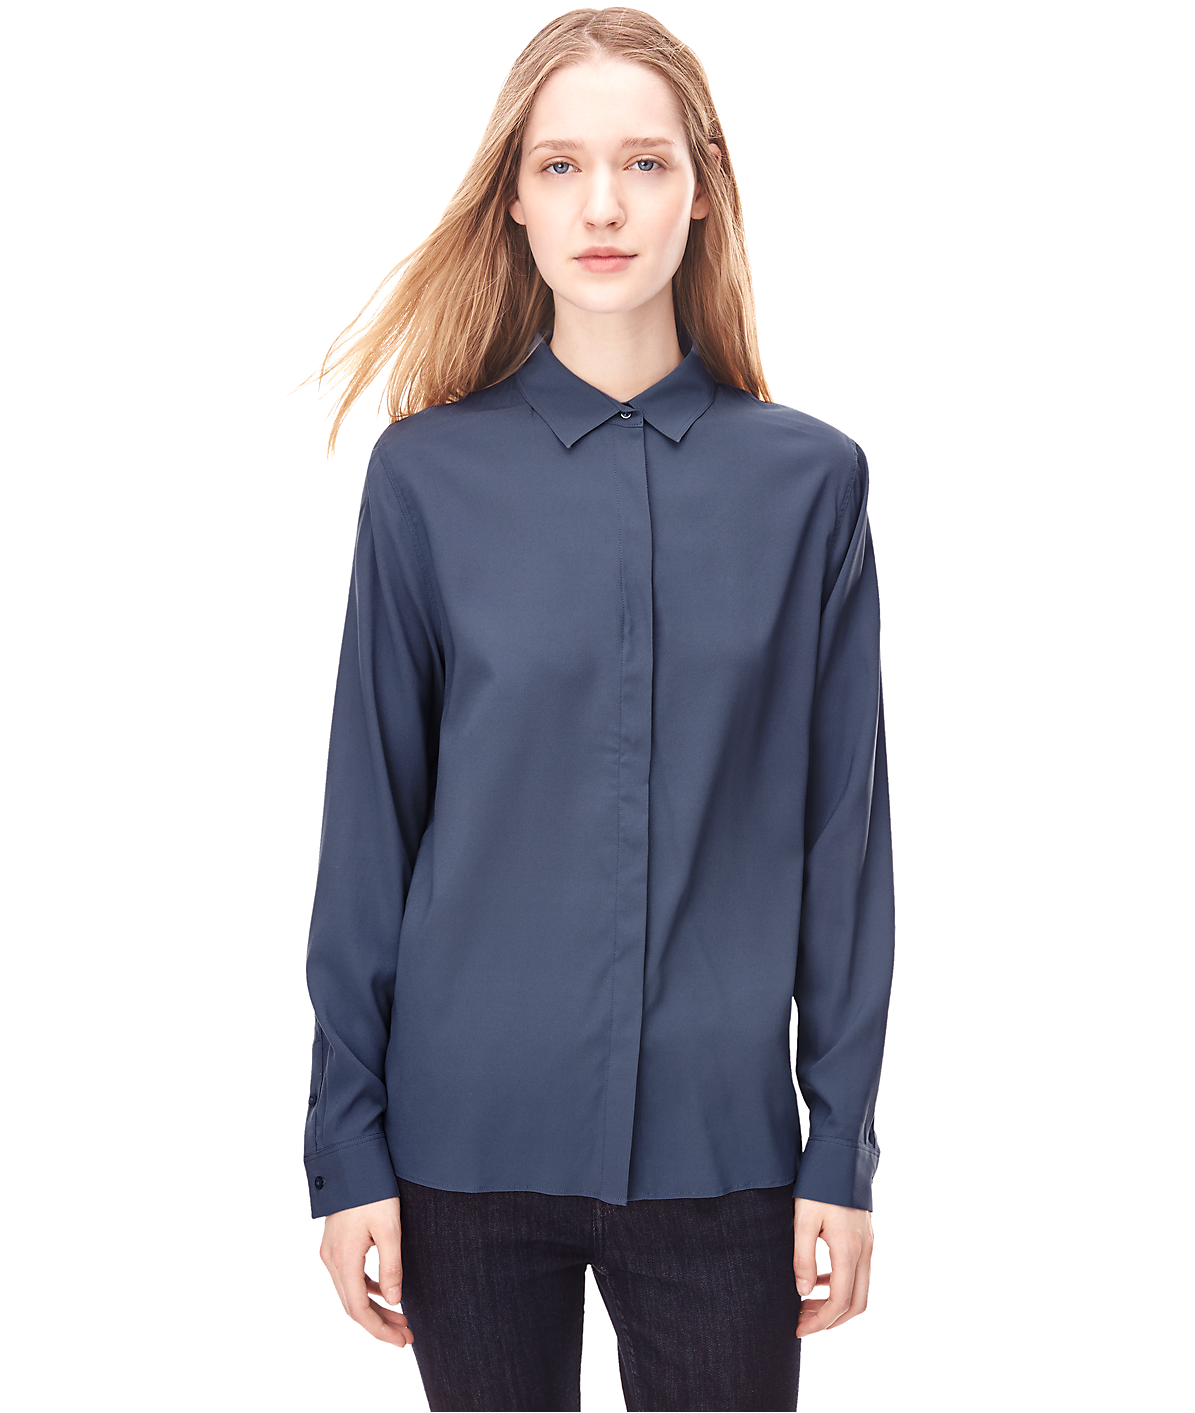 Essential blouse H2162101 from liebeskind